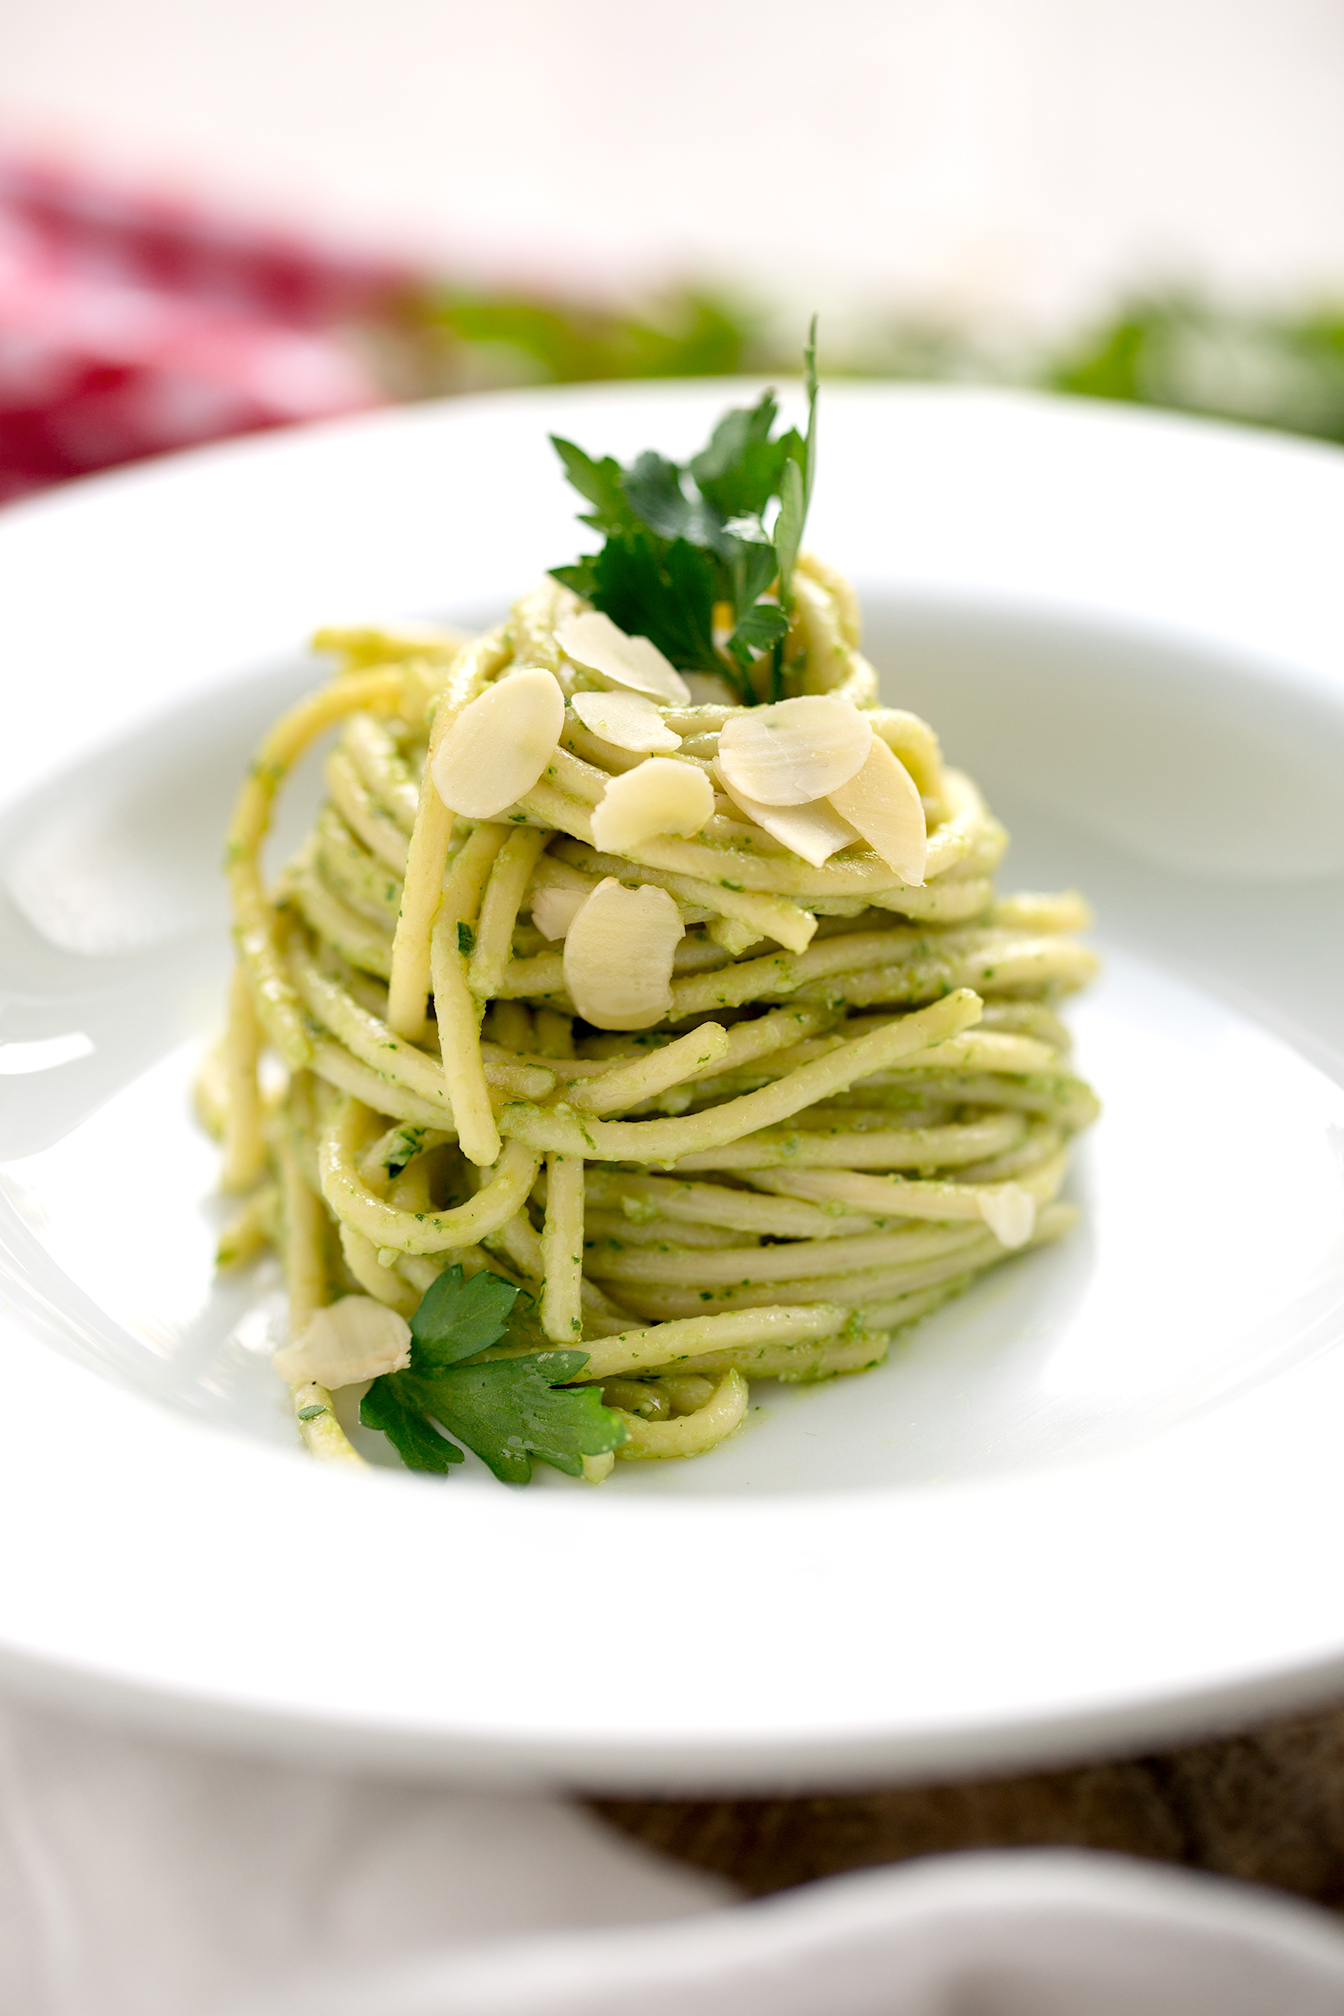 Vegan glutenfree OILFREE easy AVOCADO PESTO SPAGHETTI recipe with parsley, almonds and fresh ginger. Perfect for PASTA, dressings, salads, dips and burgers | vegan senzaglutine PESTO DI AVOCADO , mandorle zenzero e prezzemolo SENZA OLIO per PASTA, insalate, aperitivi e burgers #healthy